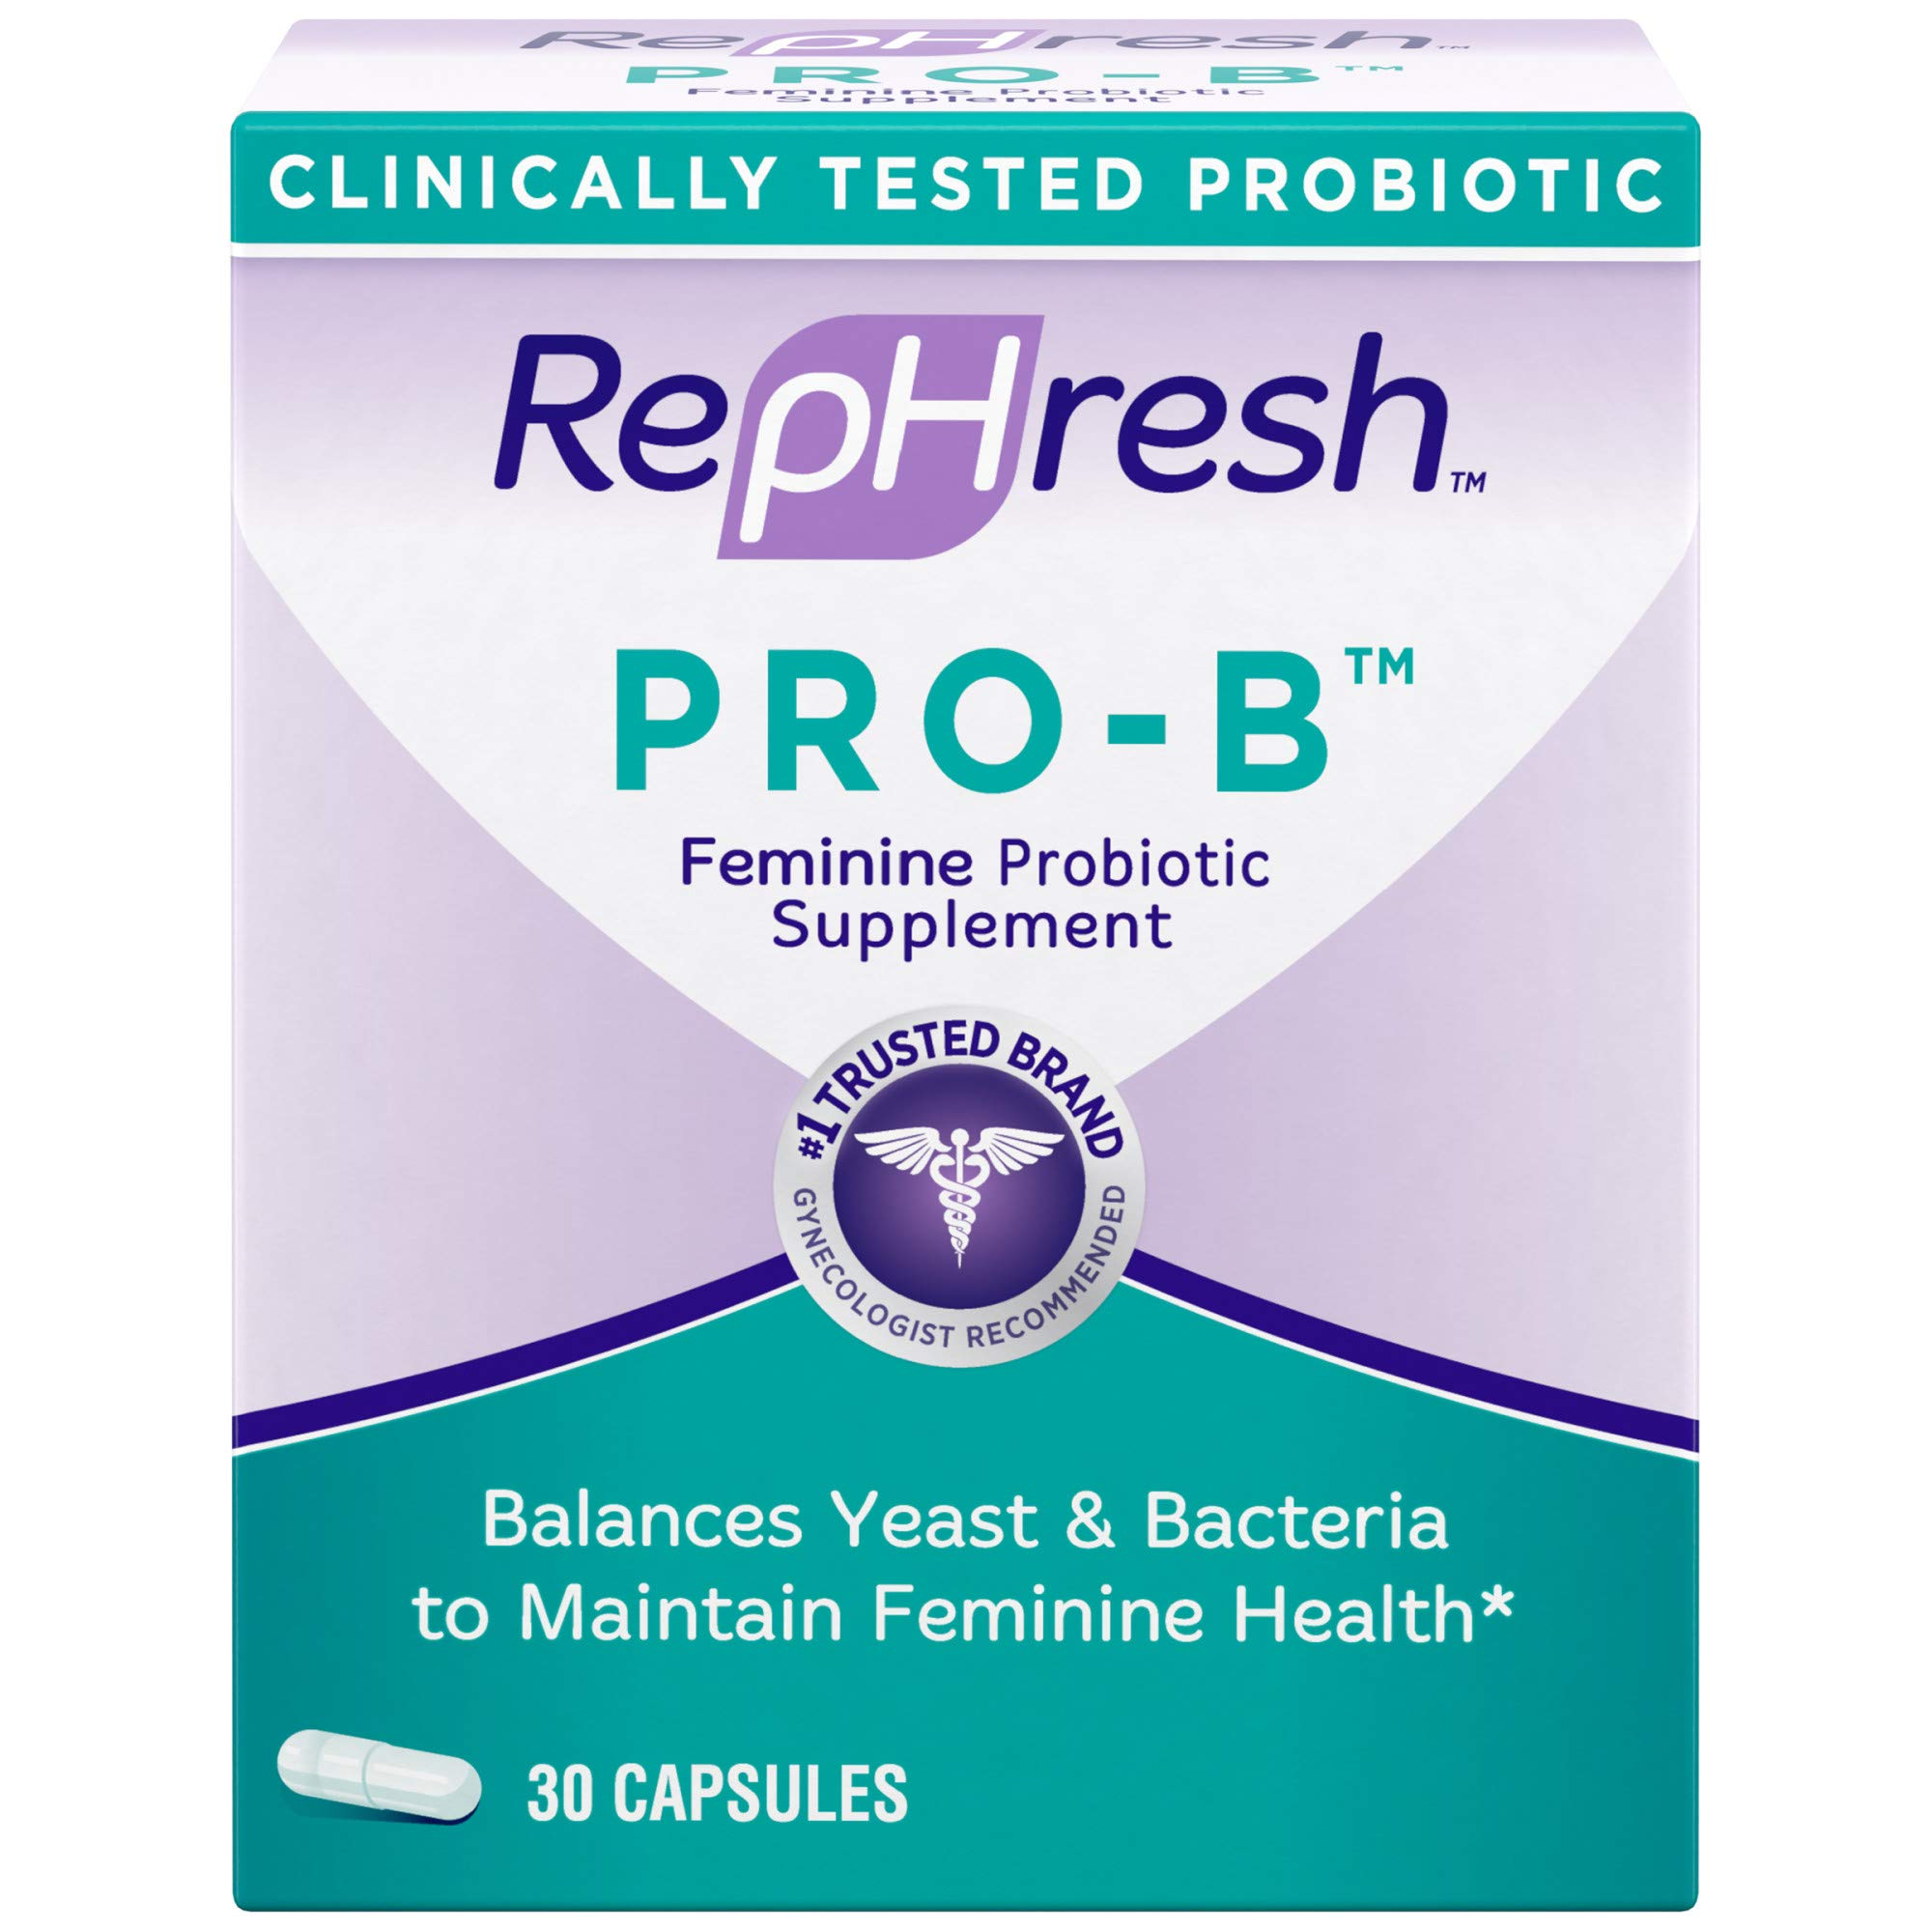 RepHresh Pro-B Probiotic Supplement for Women, 30 Oral Capsules by Rephresh